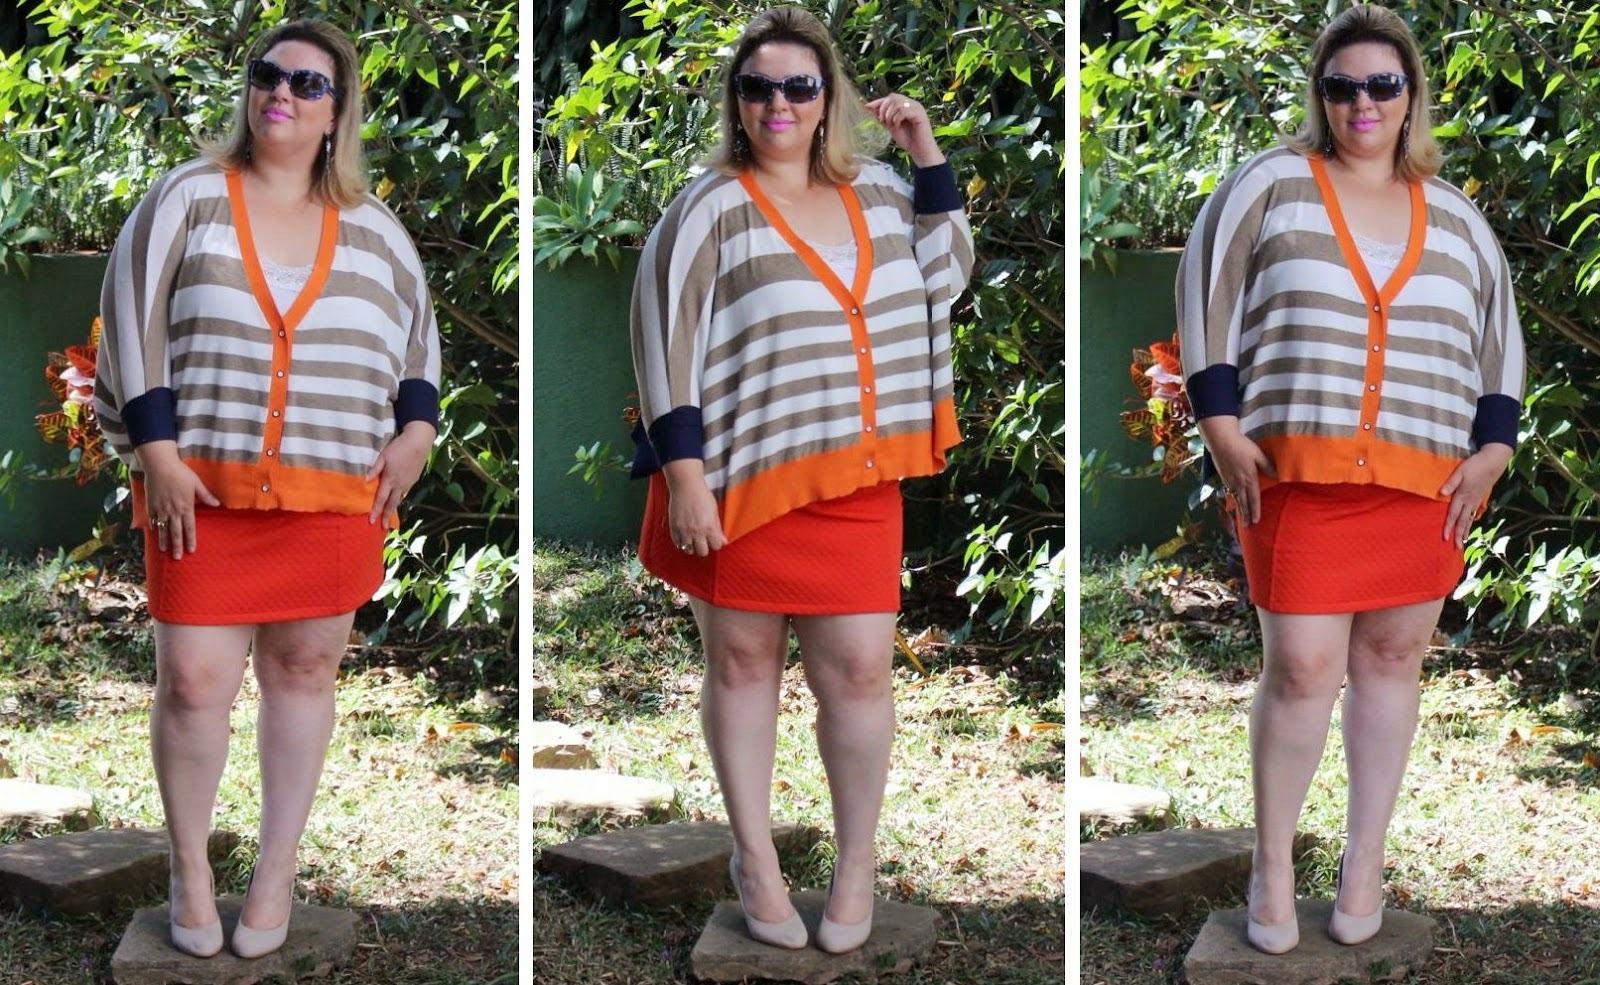 malha, matelasse, saia, skirt, laranja, orange, look me, look, plus size, moda, fashion, fashion mimi, look do dia, look of the day, prada, óculos, glasses, shoes, sapato nude, brás, kara plus size, gato, gordinha